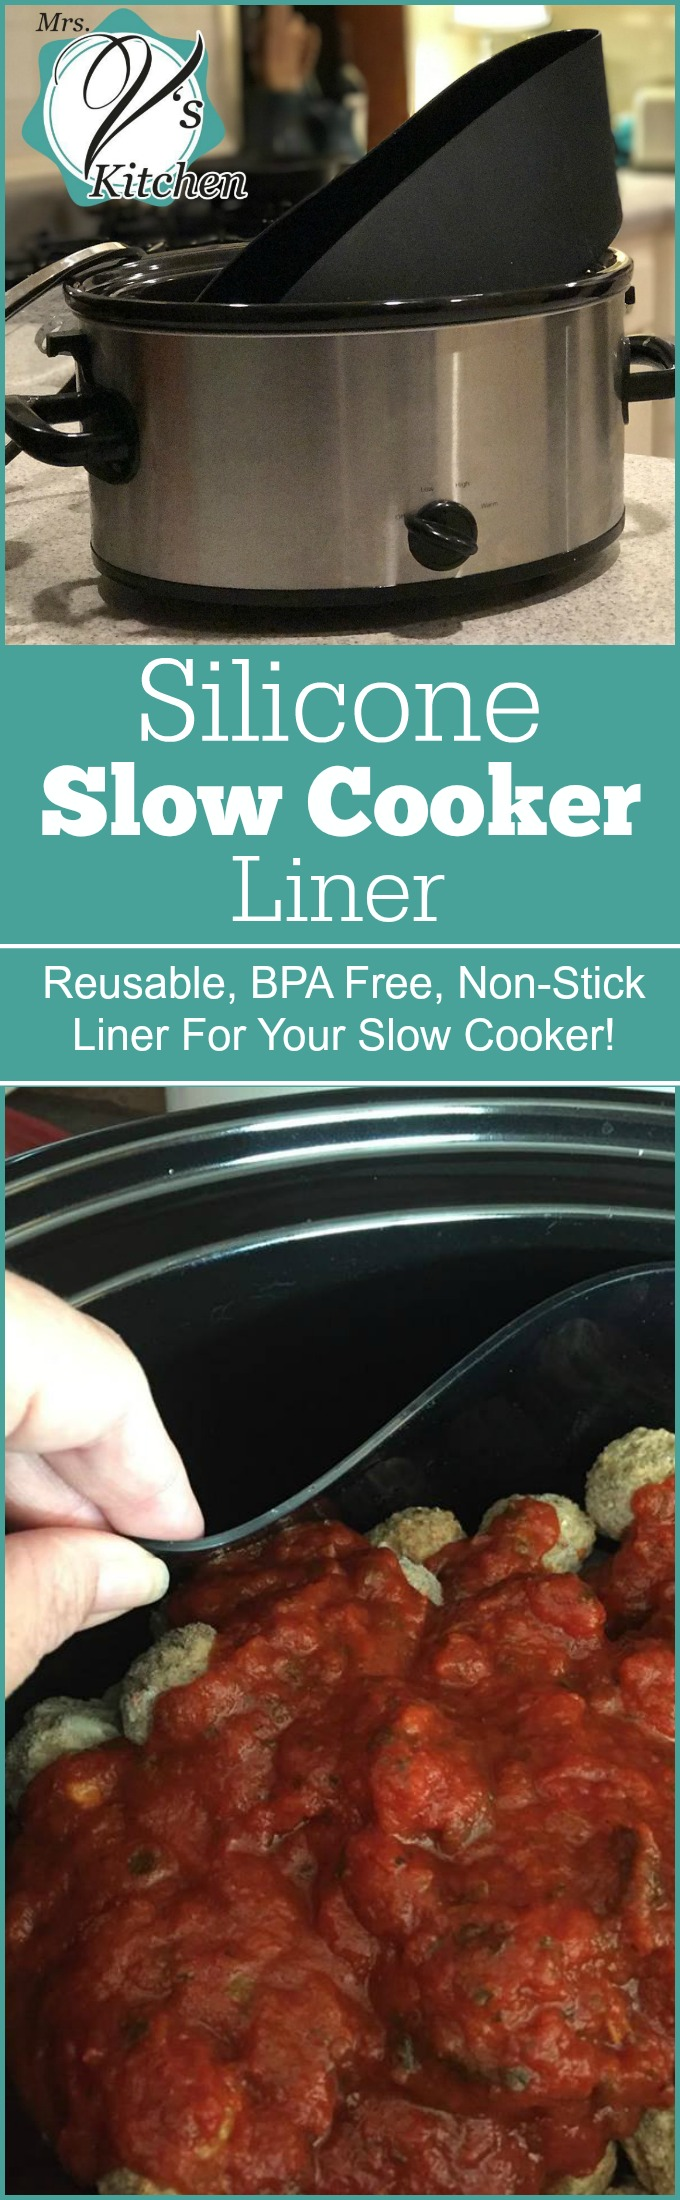 Silicone Slow Cooker Liners By Mrs. V\'s Kitchen Review & Giveaway ...